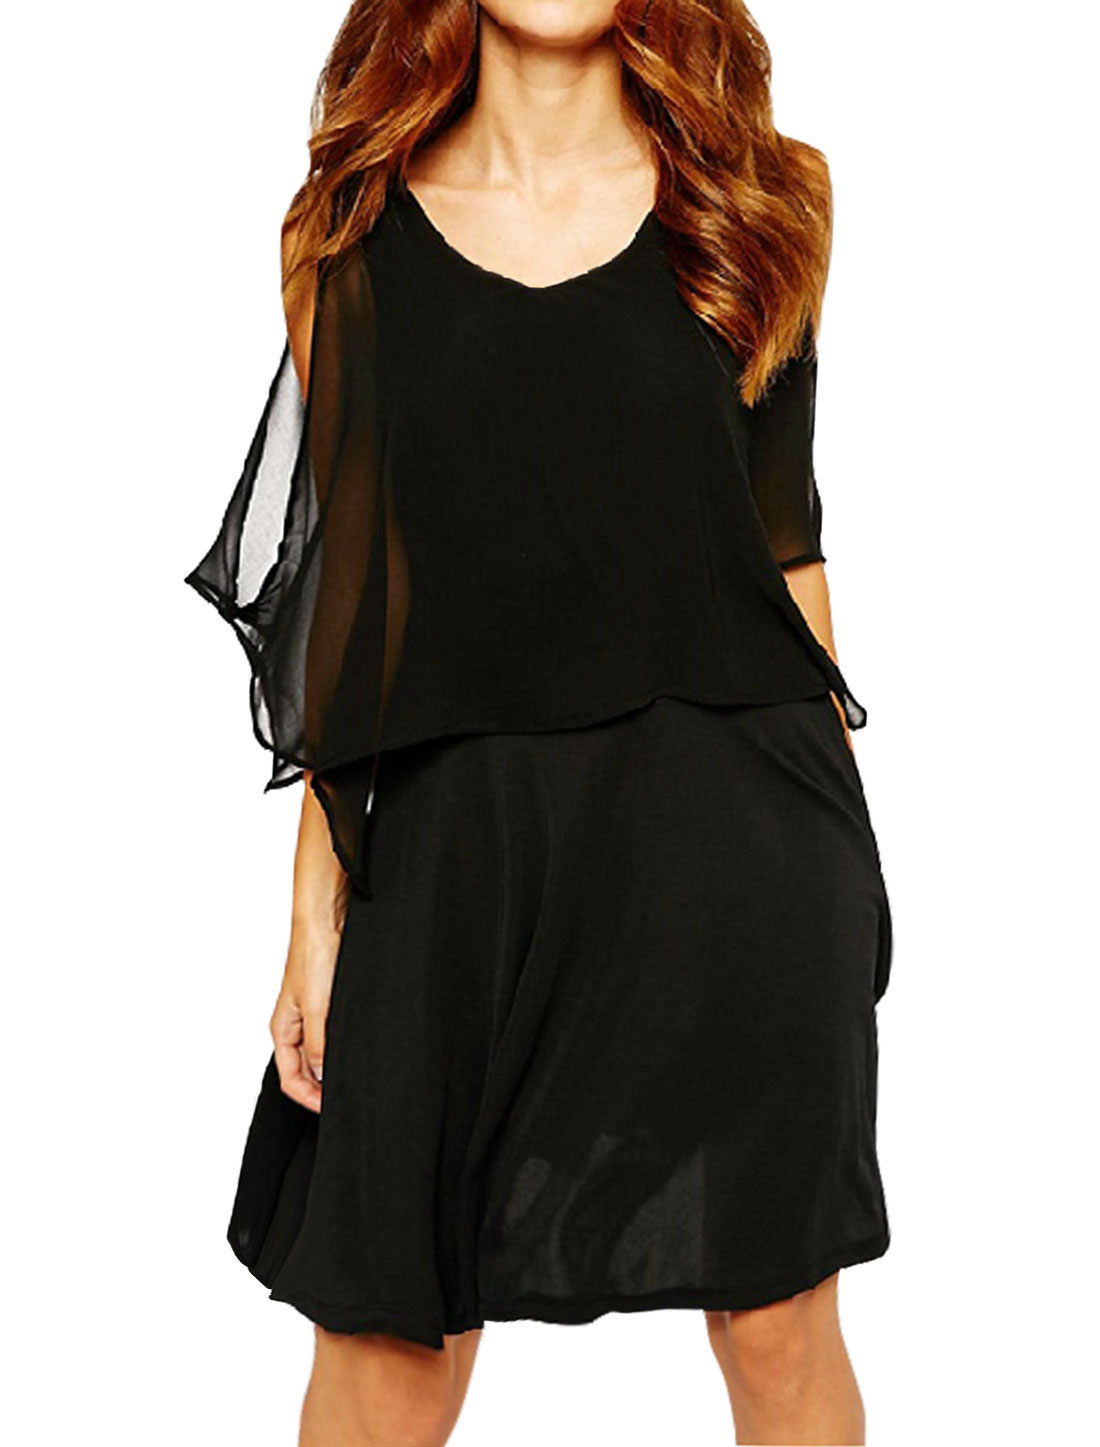 Women Open Back Overlay Upper Paneled Layered Tunic Top Black M